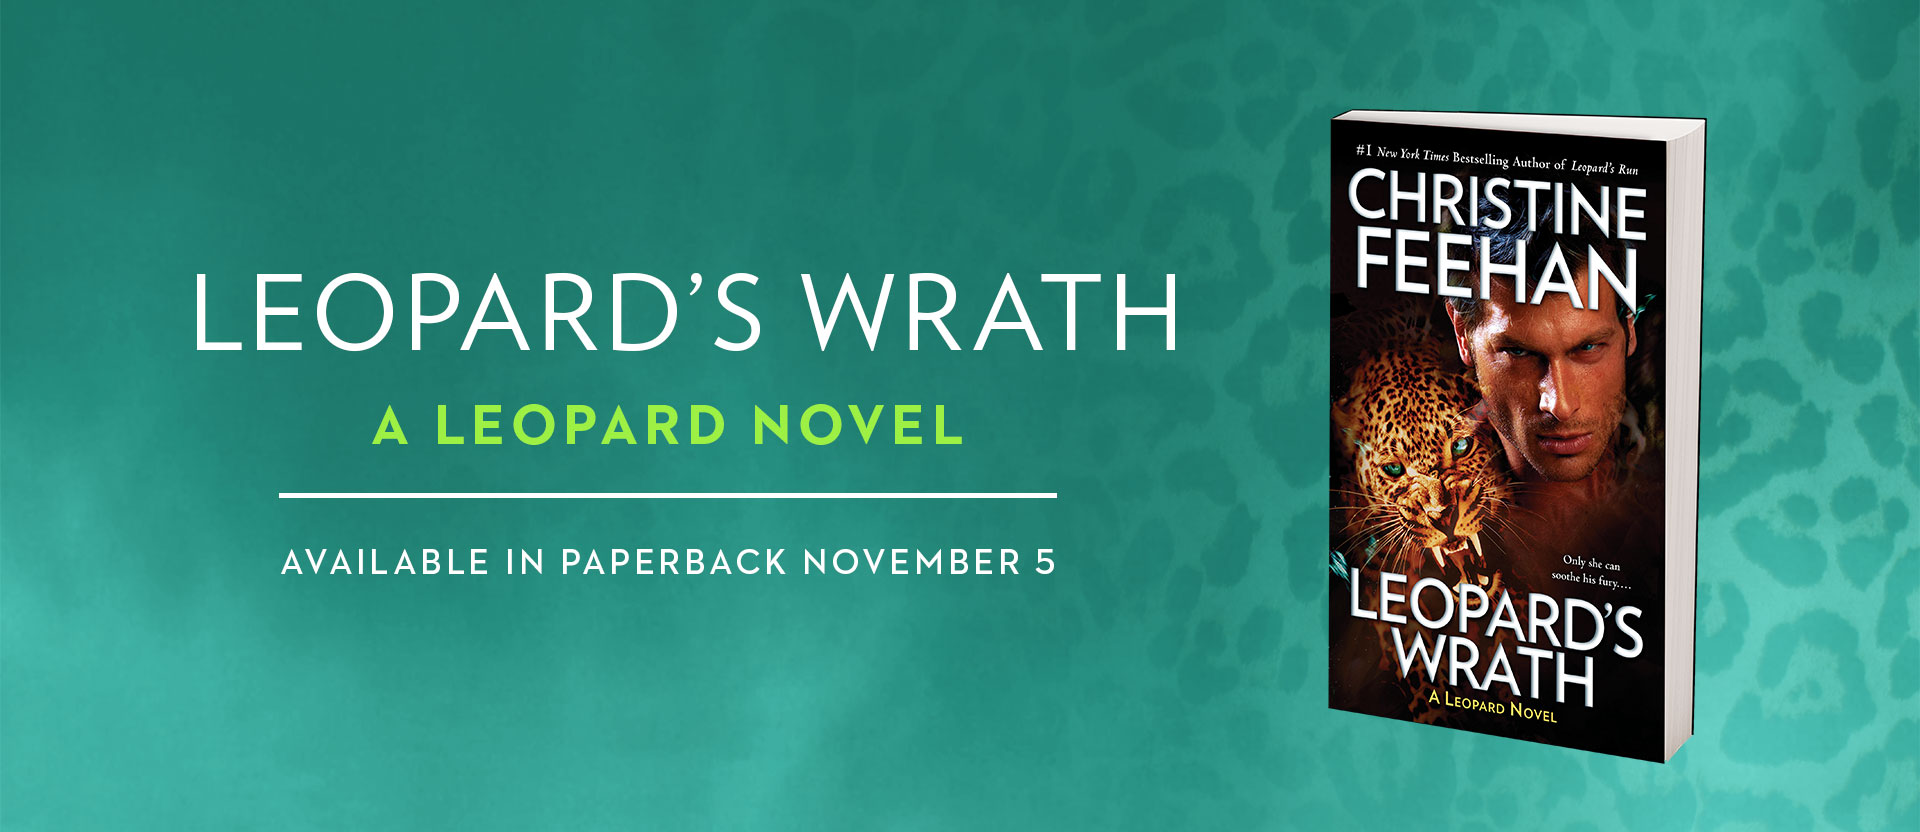 Leopards Wrath in paperback!